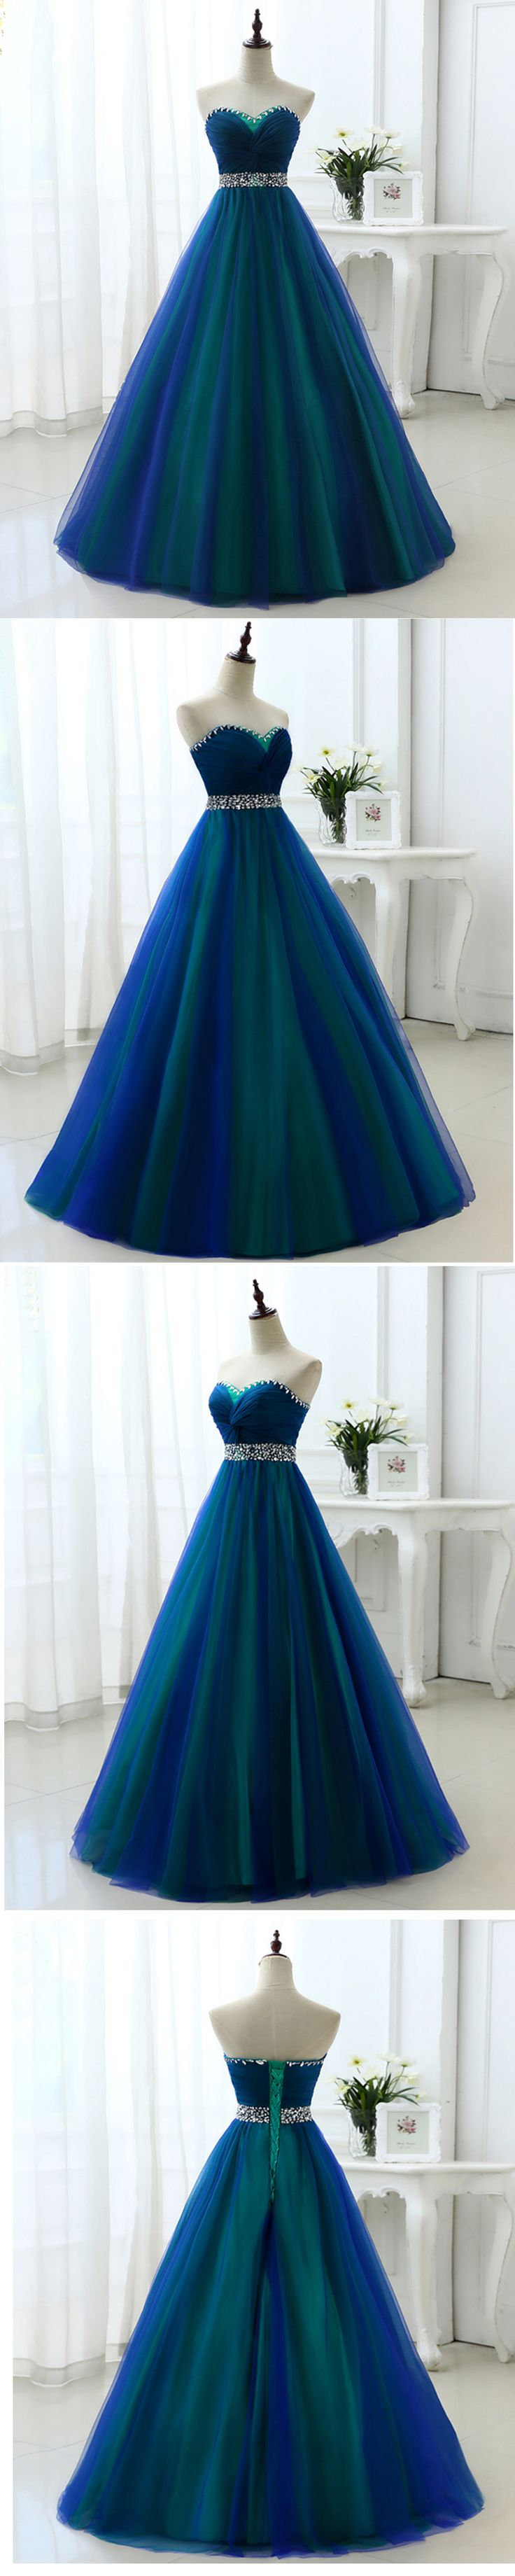 Cute beaded tulle long prom dress for teens